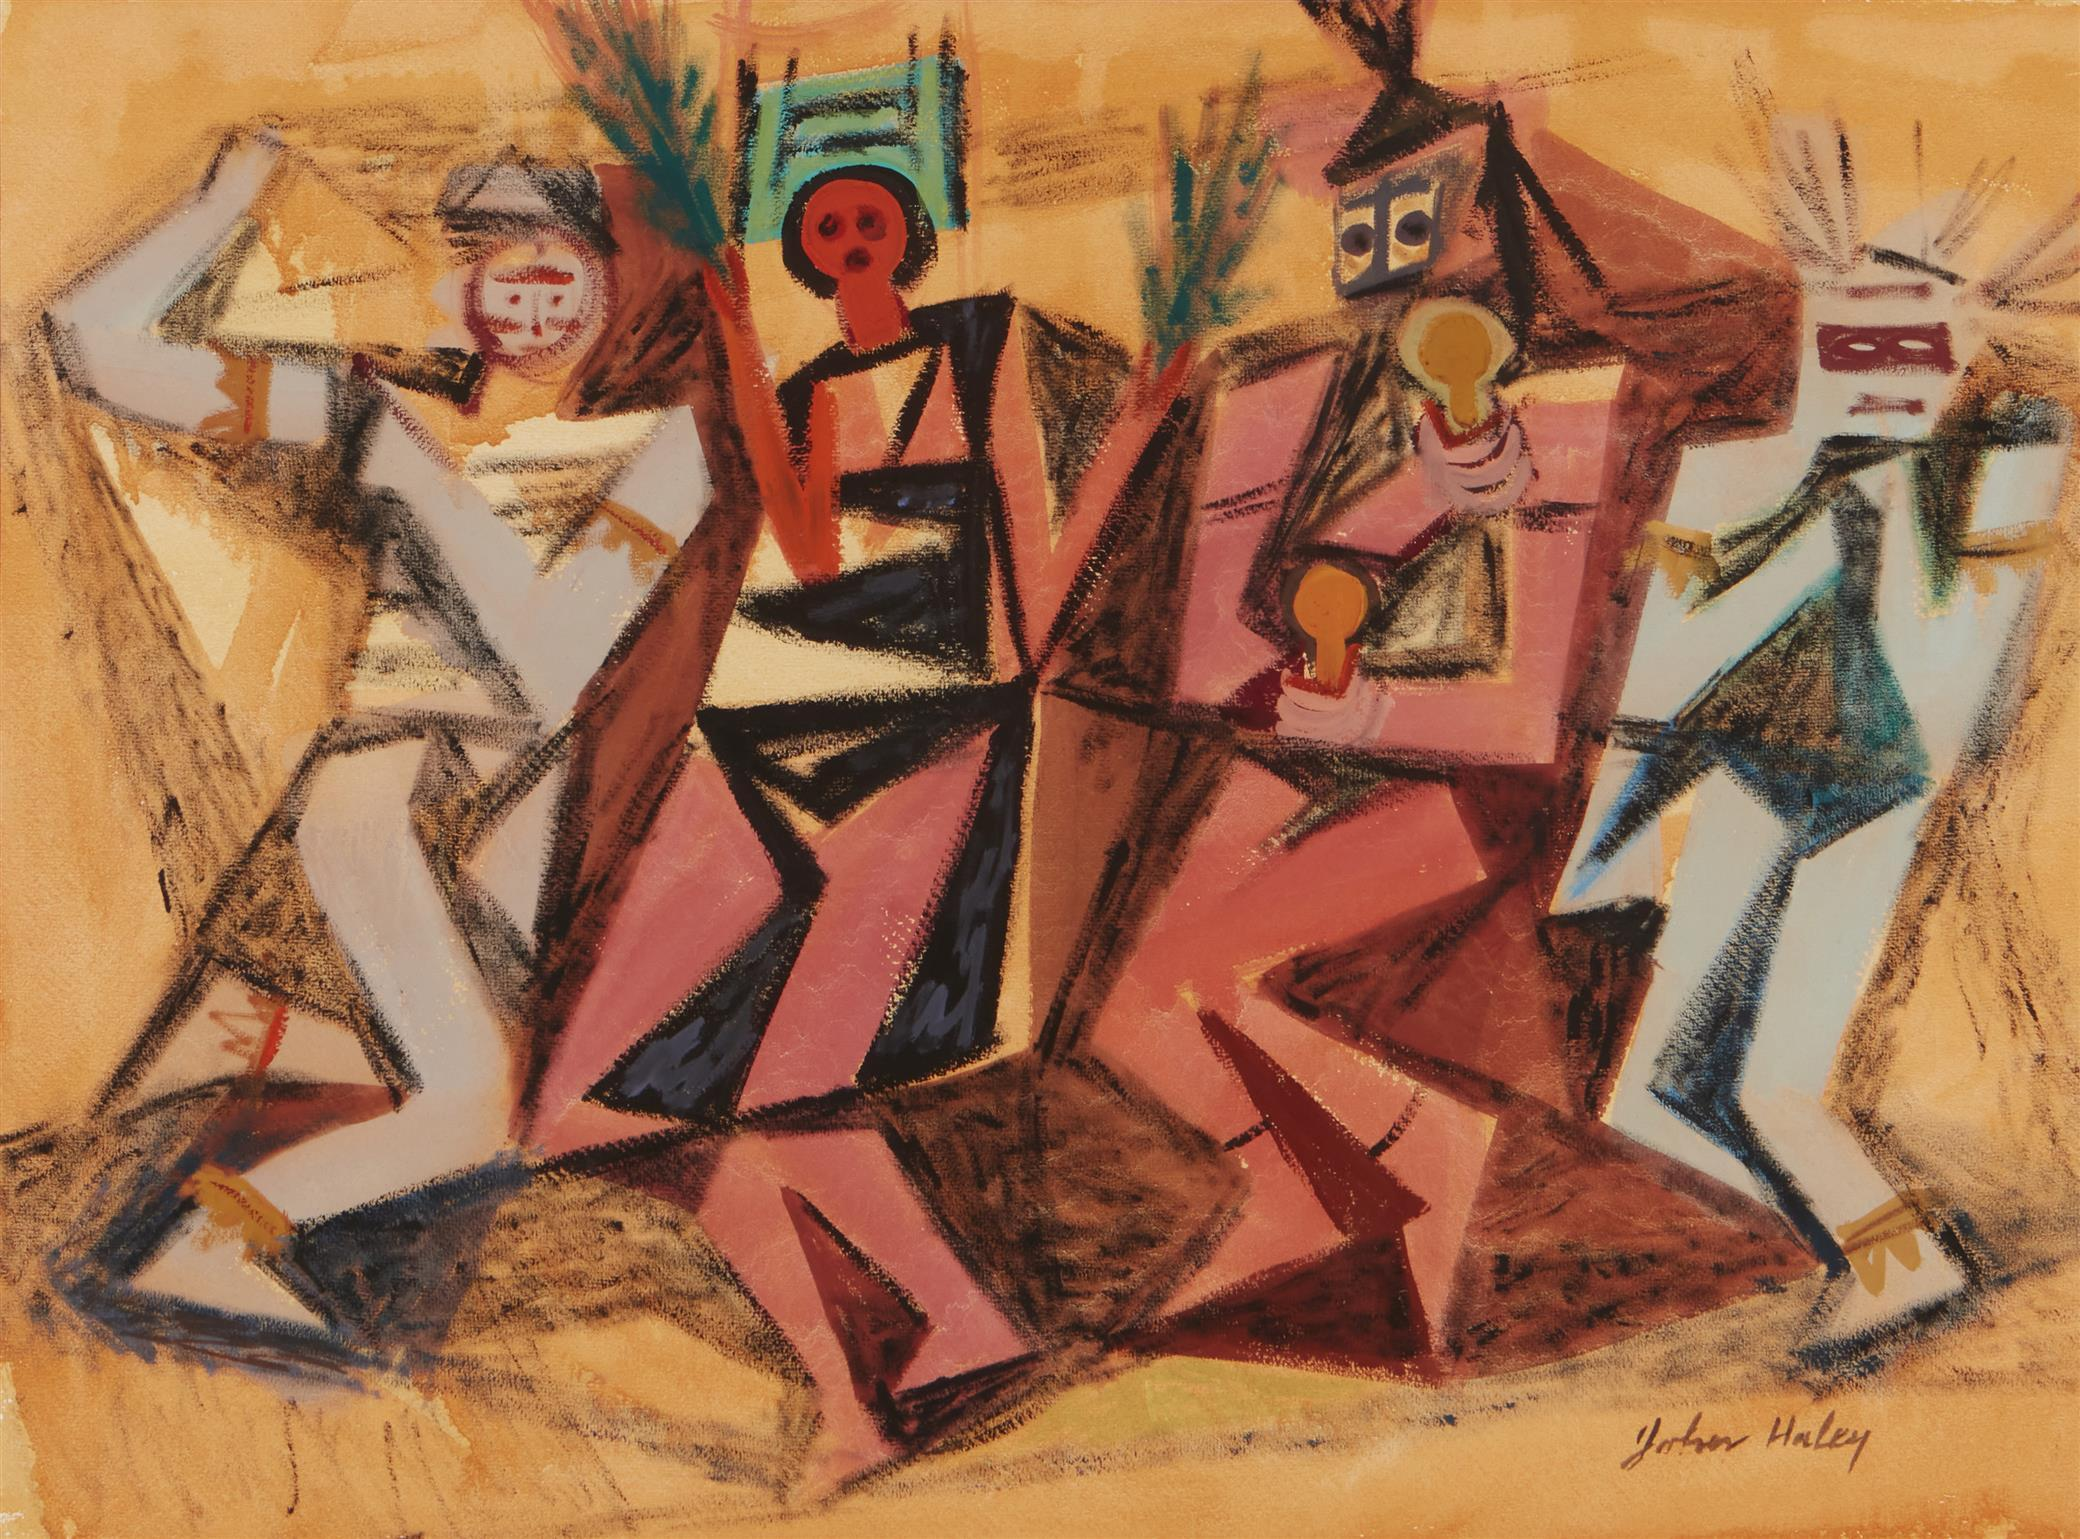 """John Charles Haley, (1905-1991, Berkeley, CA), """"Pueblo Indian Dance,"""" 1947, Watercolor and gouache on paper under glass, Sight: 16.5"""" H"""